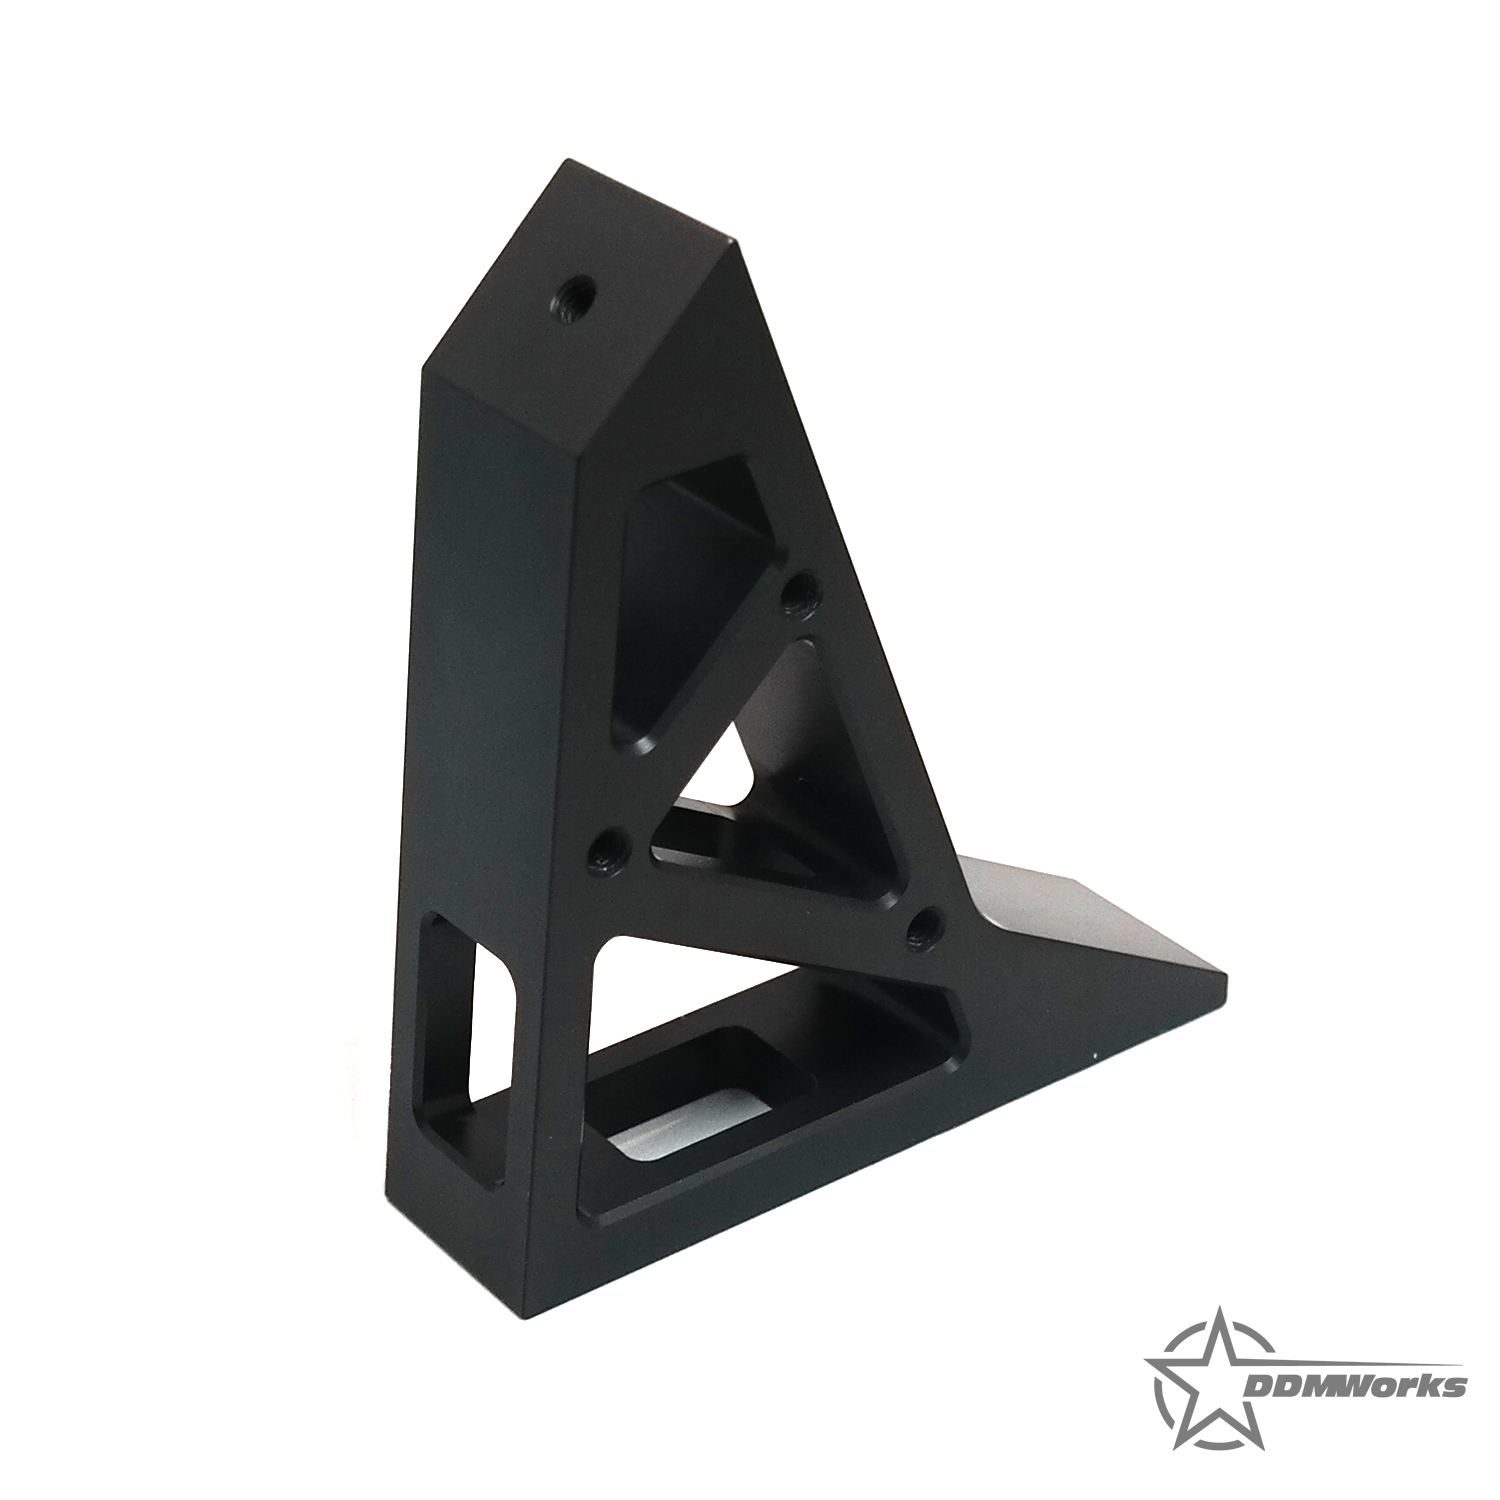 Polaris Slingshot windshield mount